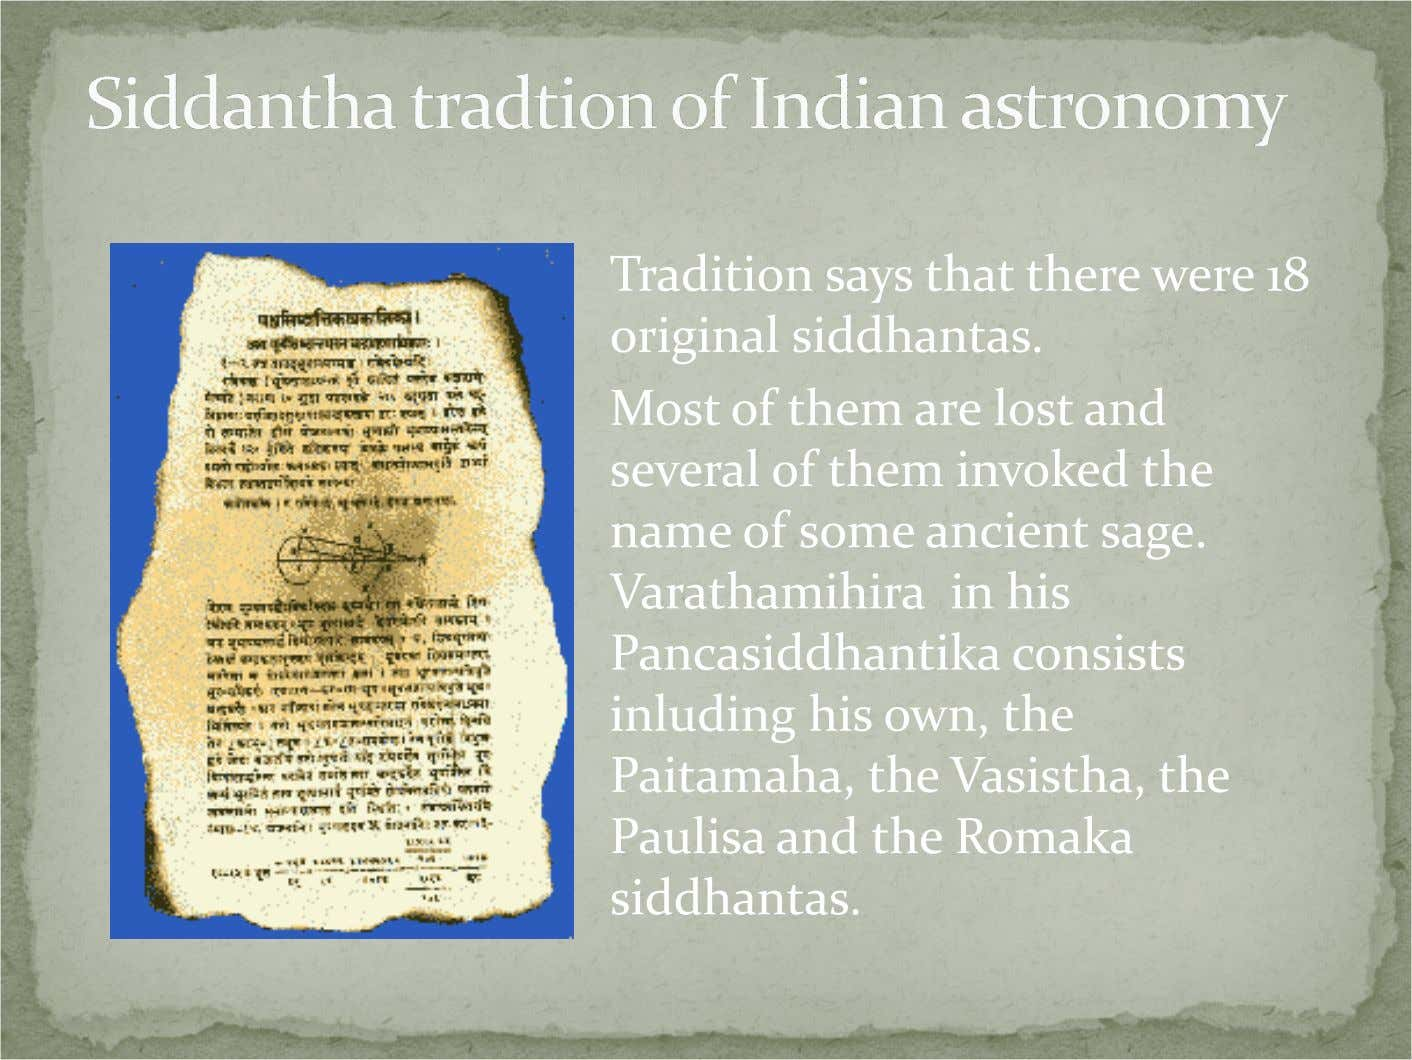 Tradition says that there were 18 original siddhantas. Most of them are lost and several